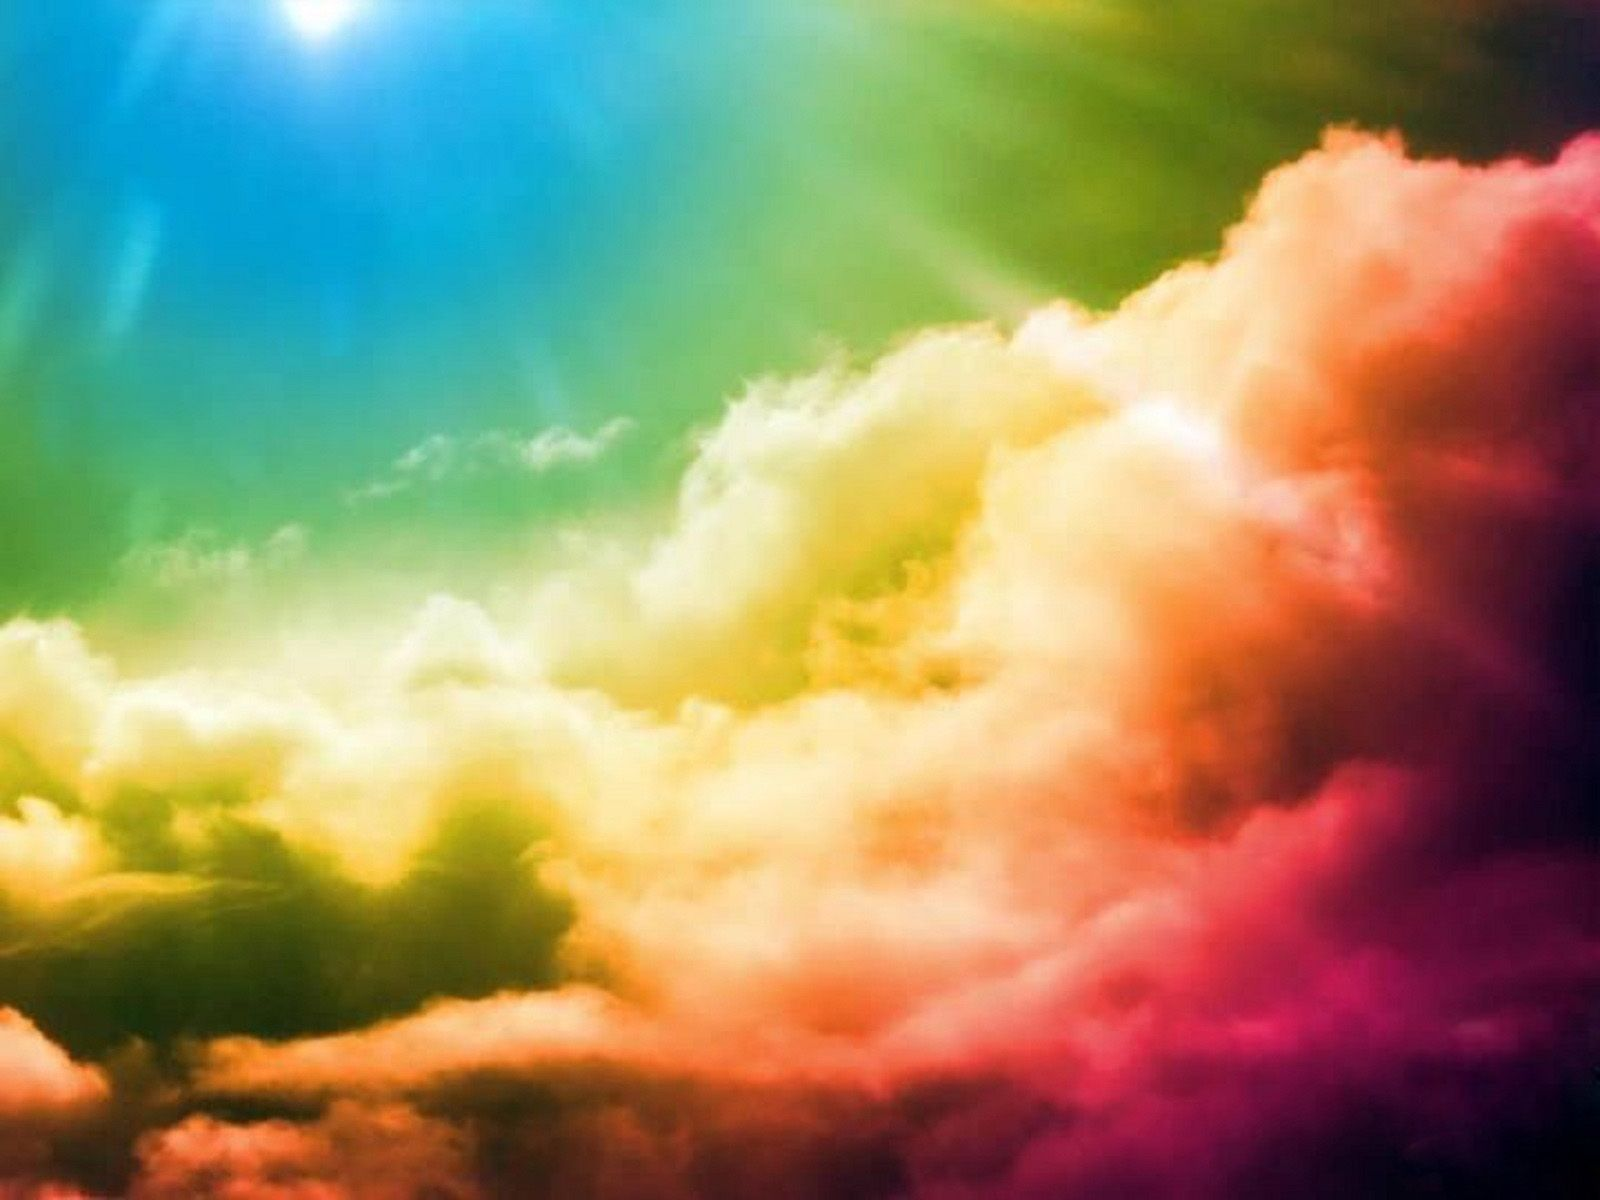 Abstract Colorful Landscape Free High Quality Background Pictures Colorful Landscape Landscape Pictures What S My Favorite Color